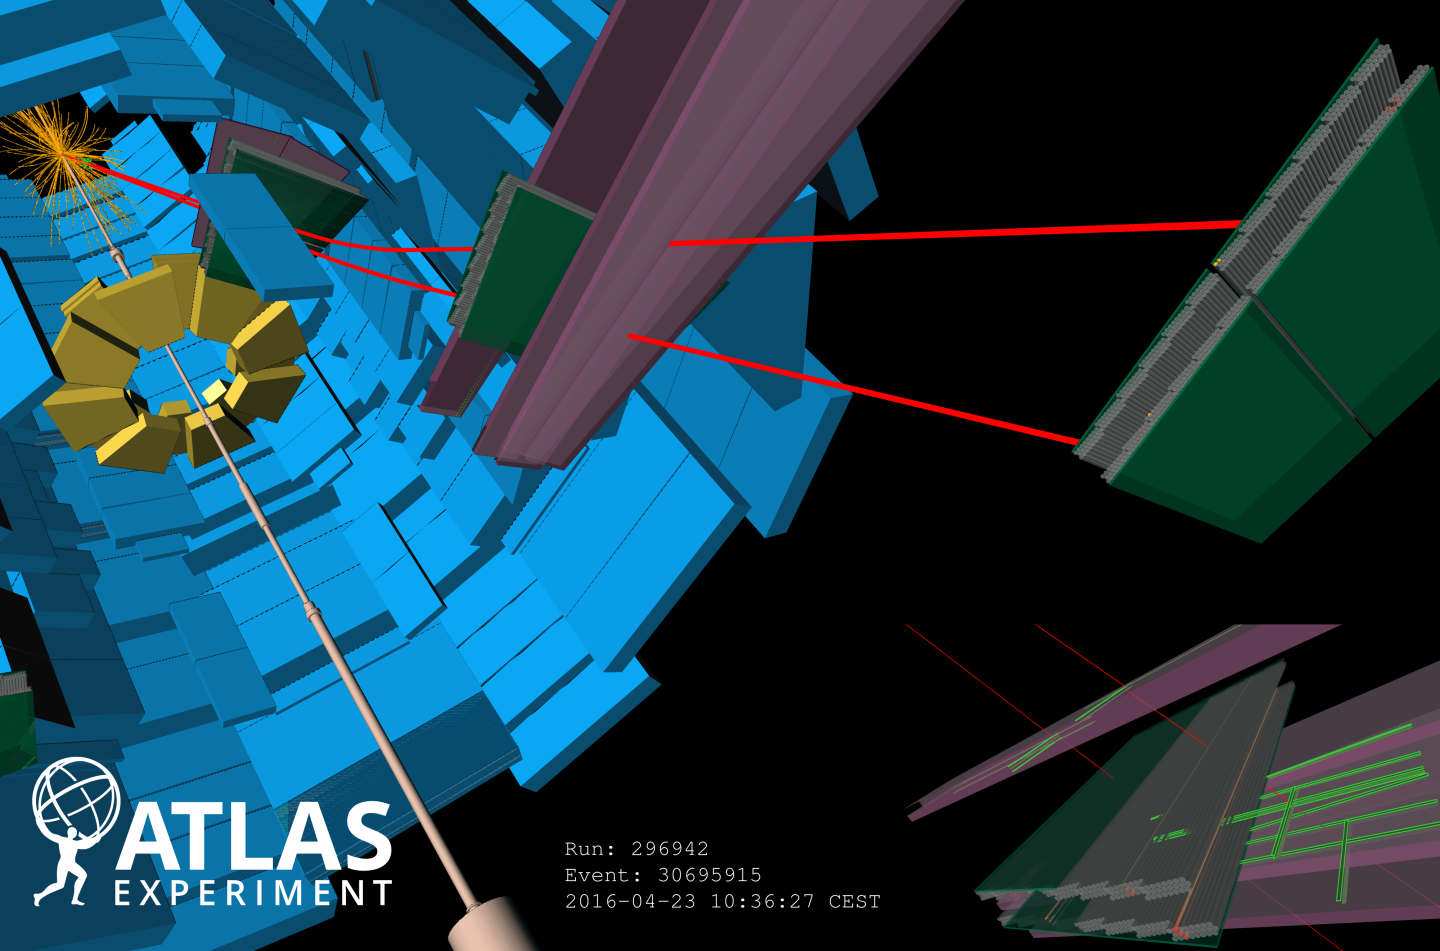 ATLAS,restartLHC,13 TeV,LHC run2,event,Real Events,For Press